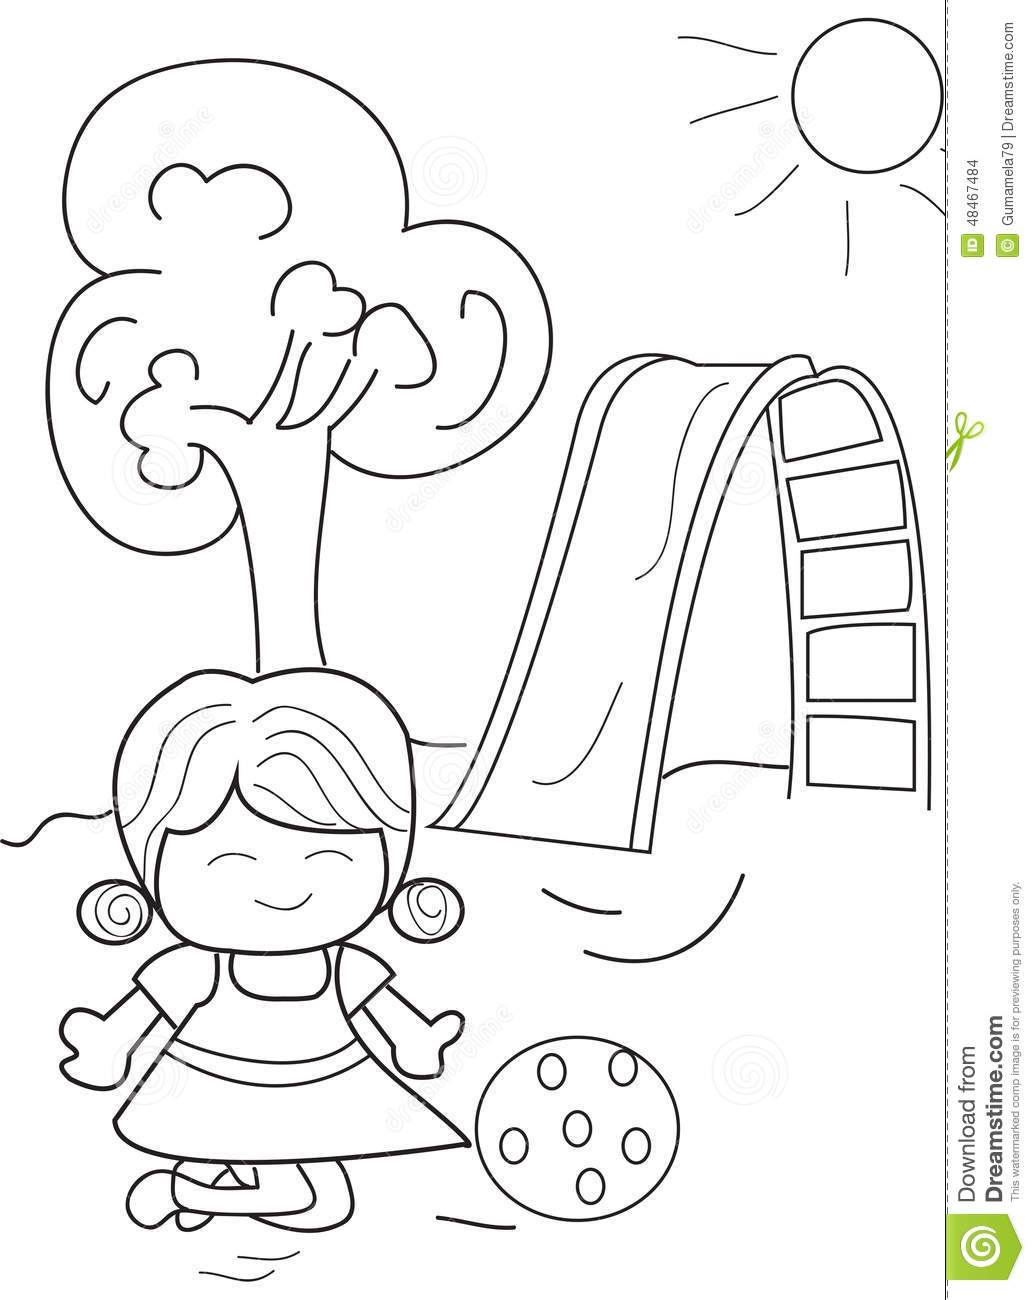 cartoon coloring page of a girl having fun playing ball at the park on